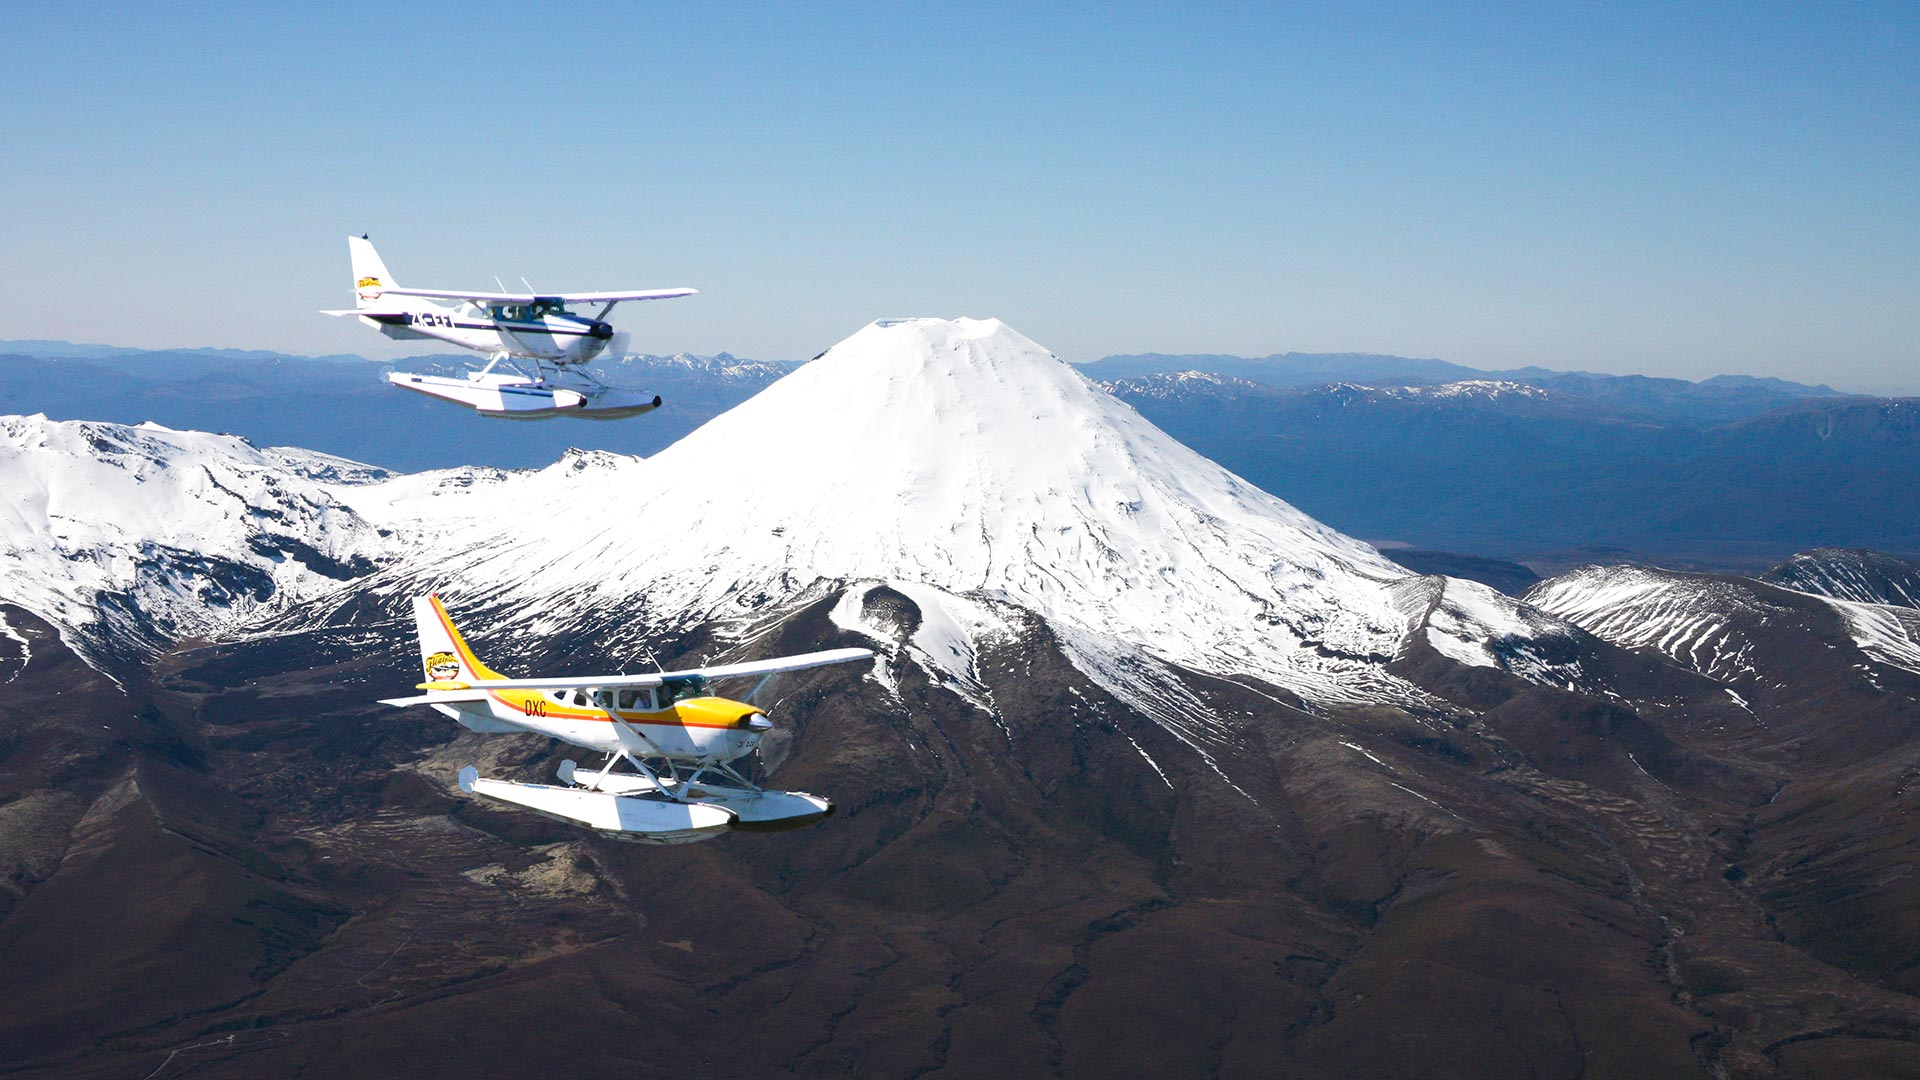 Taupo Scenic Flights   Go Flightseeing with Taupo's Float Plane